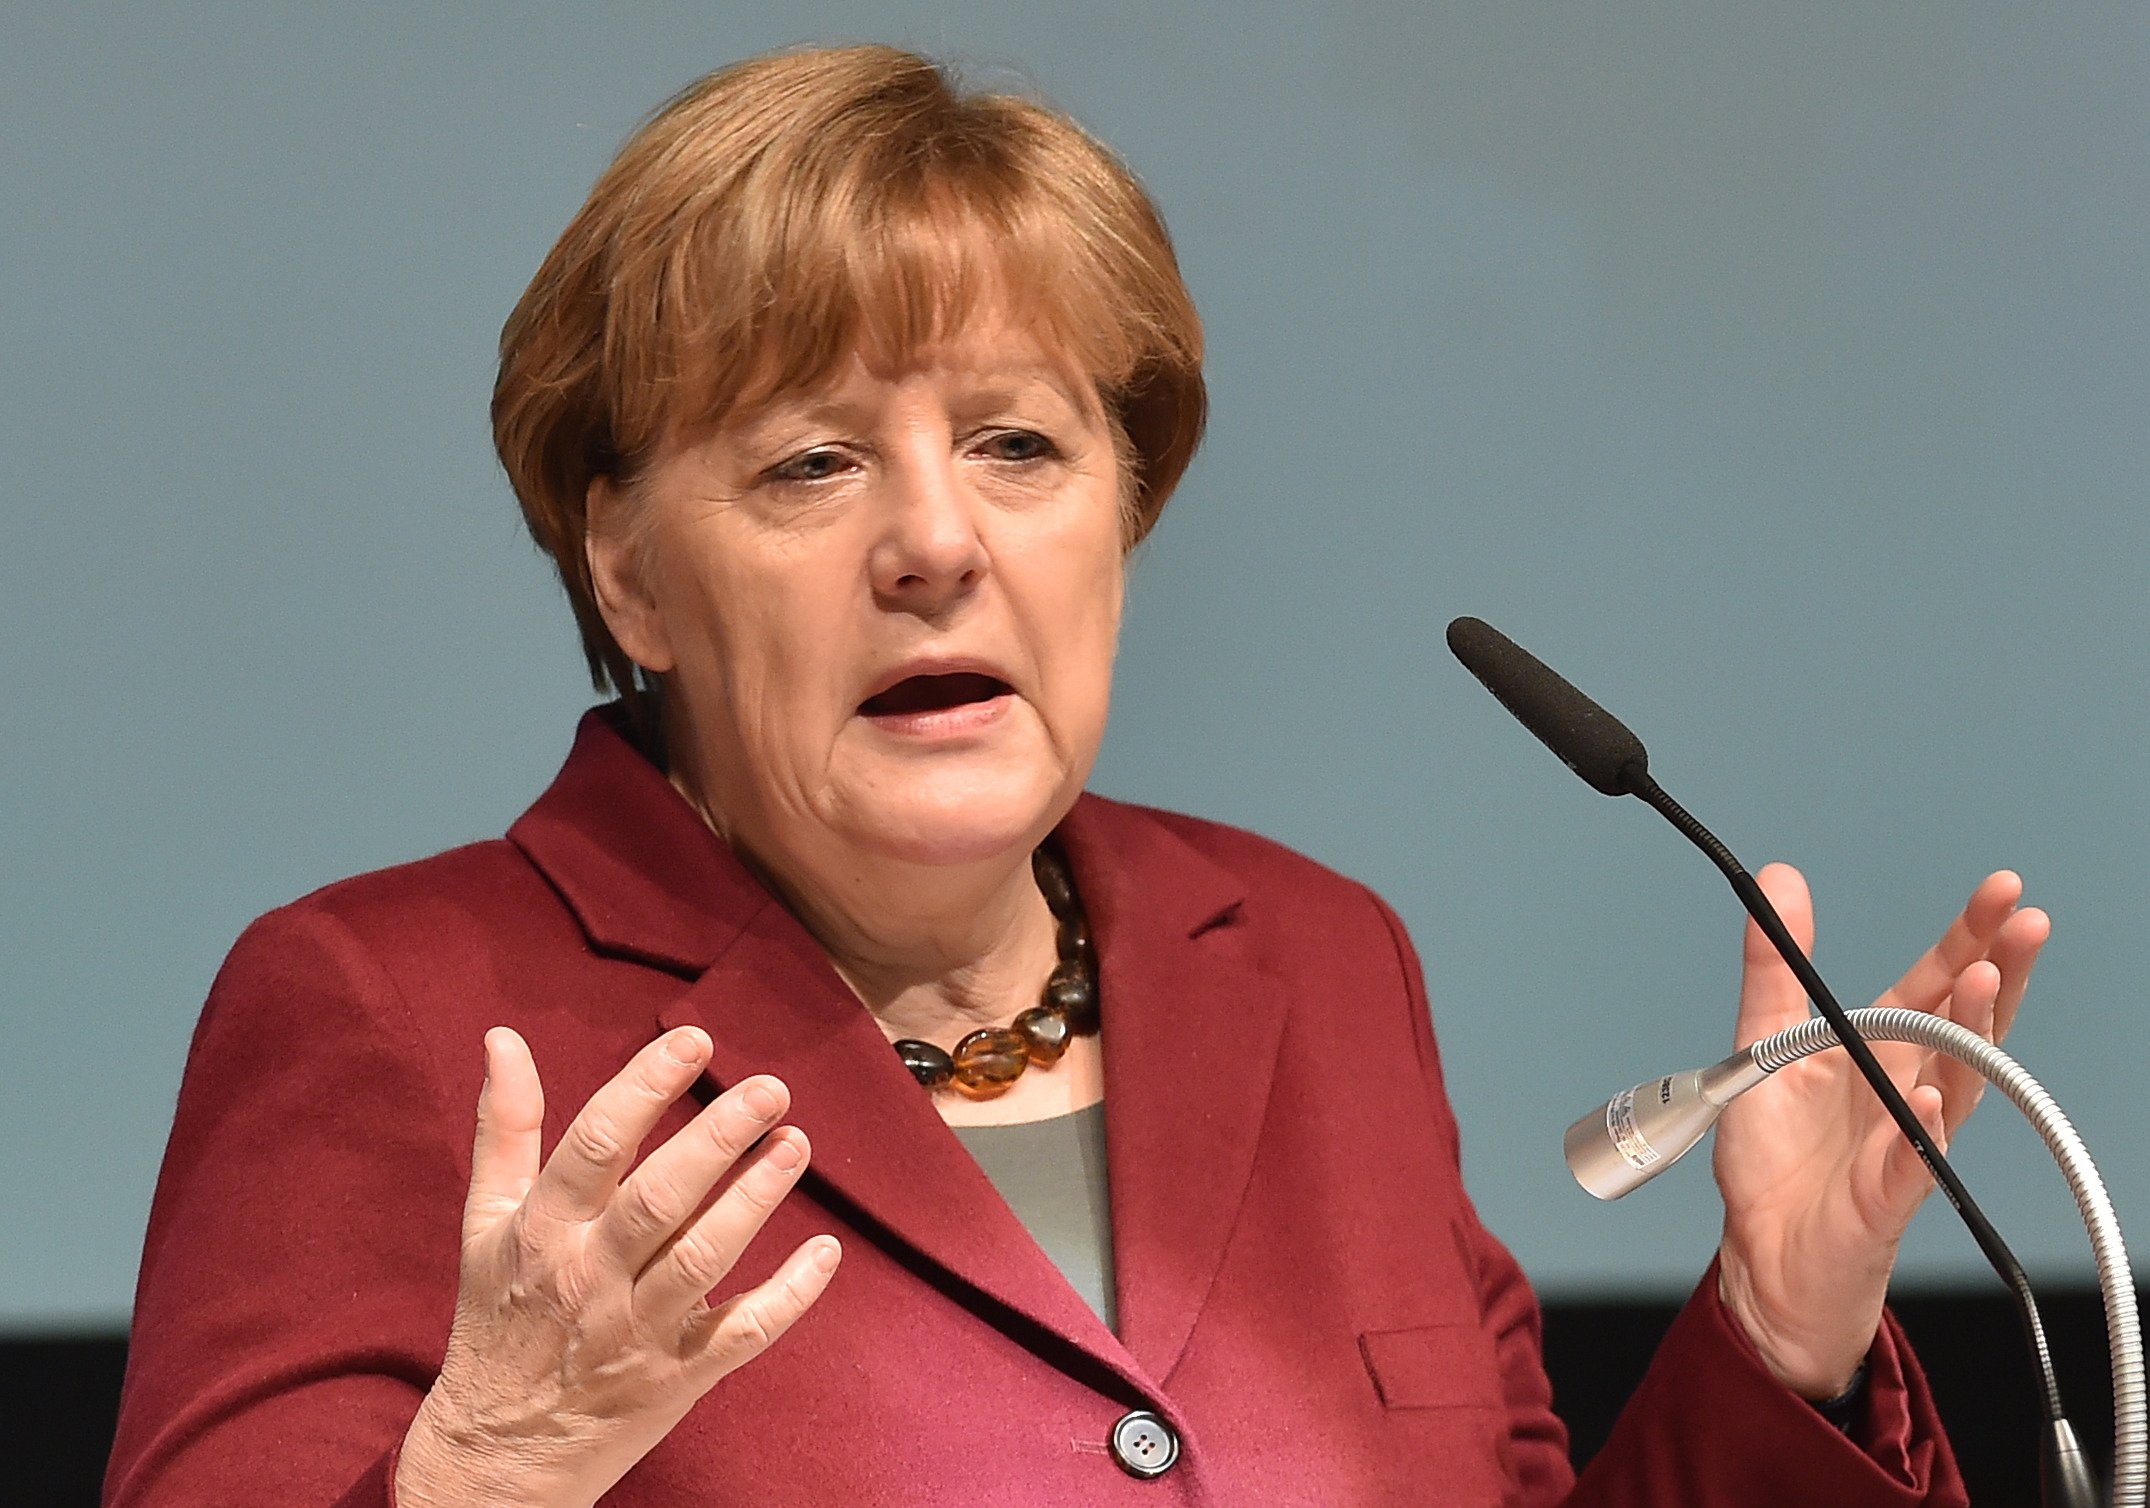 German Chancellor Angela Merkel gives a speech during a regional meeting of her Christian Democratic Union (CDU) party on January 30, 2016 in Neubrandenburg, northeastern Germany. Merkel said she expected most of the refugees from Syria and Iraq to return home once peace has returned to their countries, as she faces strong pressure over her welcoming stance towards asylum seekers. / AFP / dpa / Bernd Settnik / Germany OUTBERND SETTNIK/AFP/Getty Images